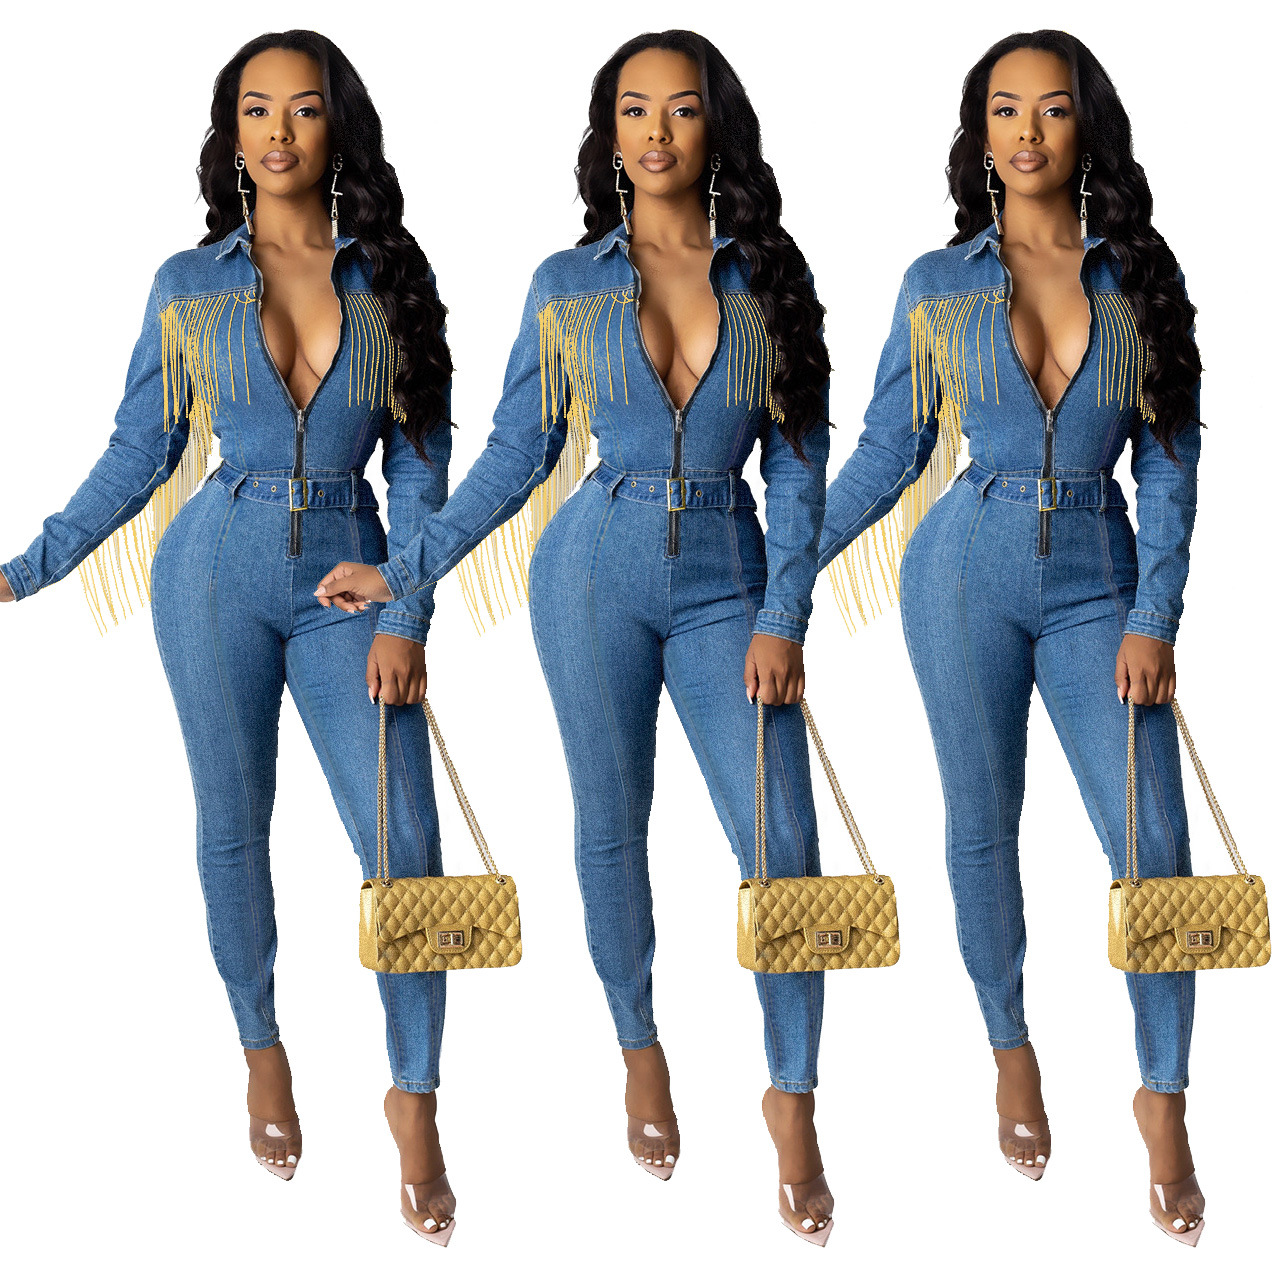 2020 Europe and America autumn and winter women's new sexy fashion fringed denim trousers jumpsuit with belt